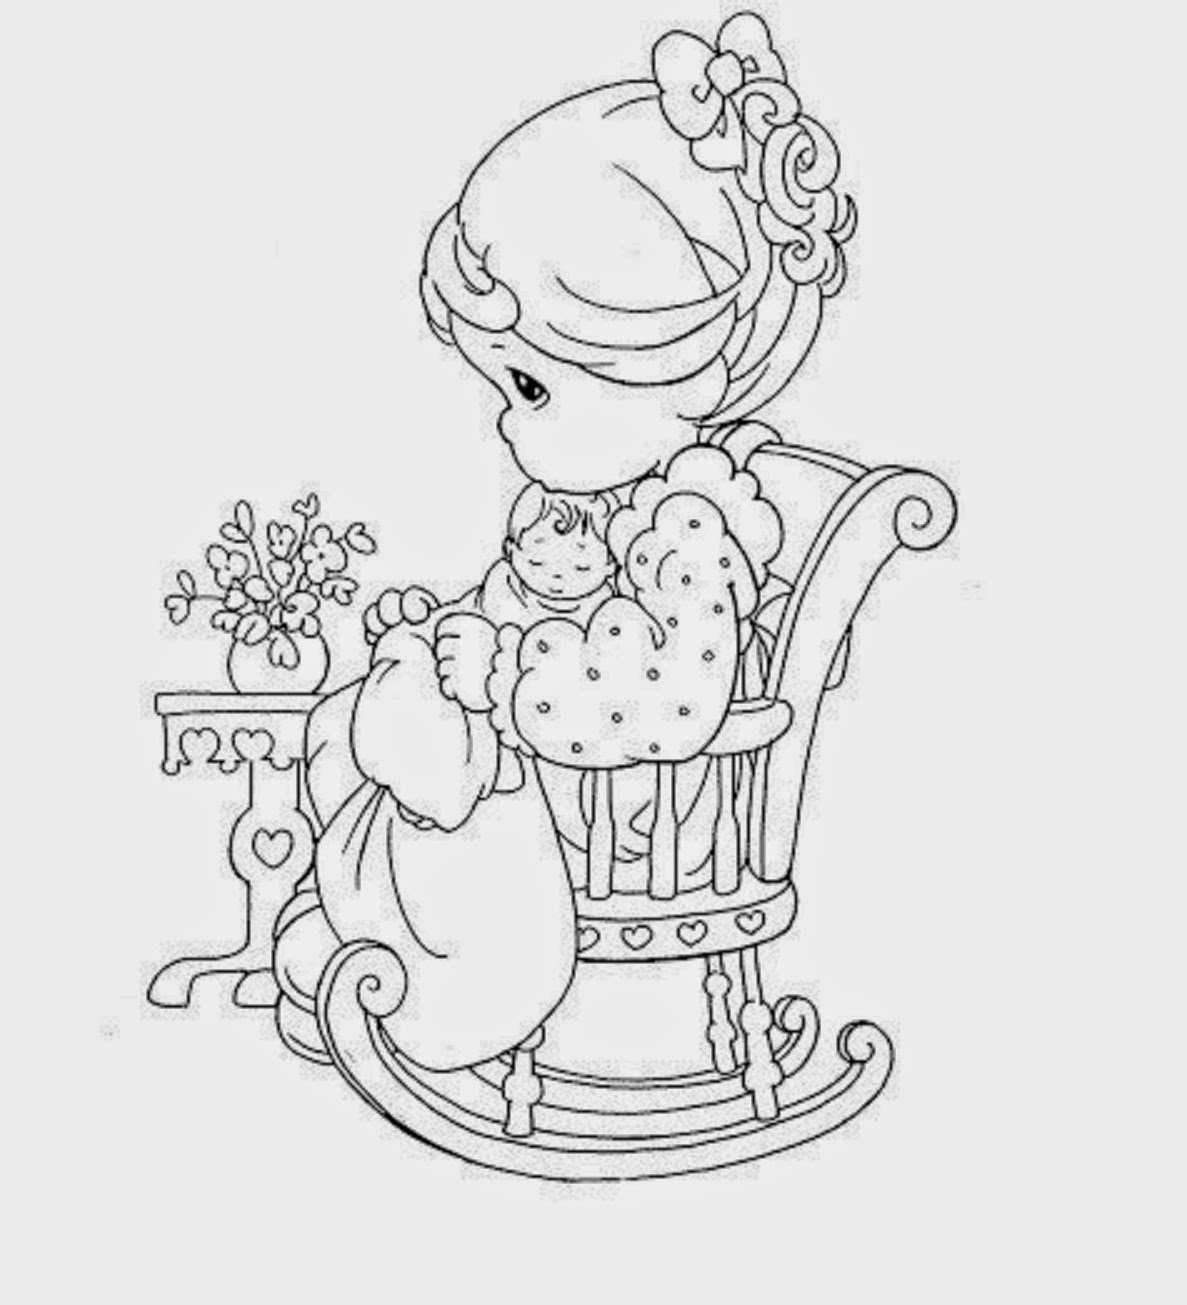 cartoon girls coloring pages girl cartoon characters coloring pages coloring home girls pages cartoon coloring